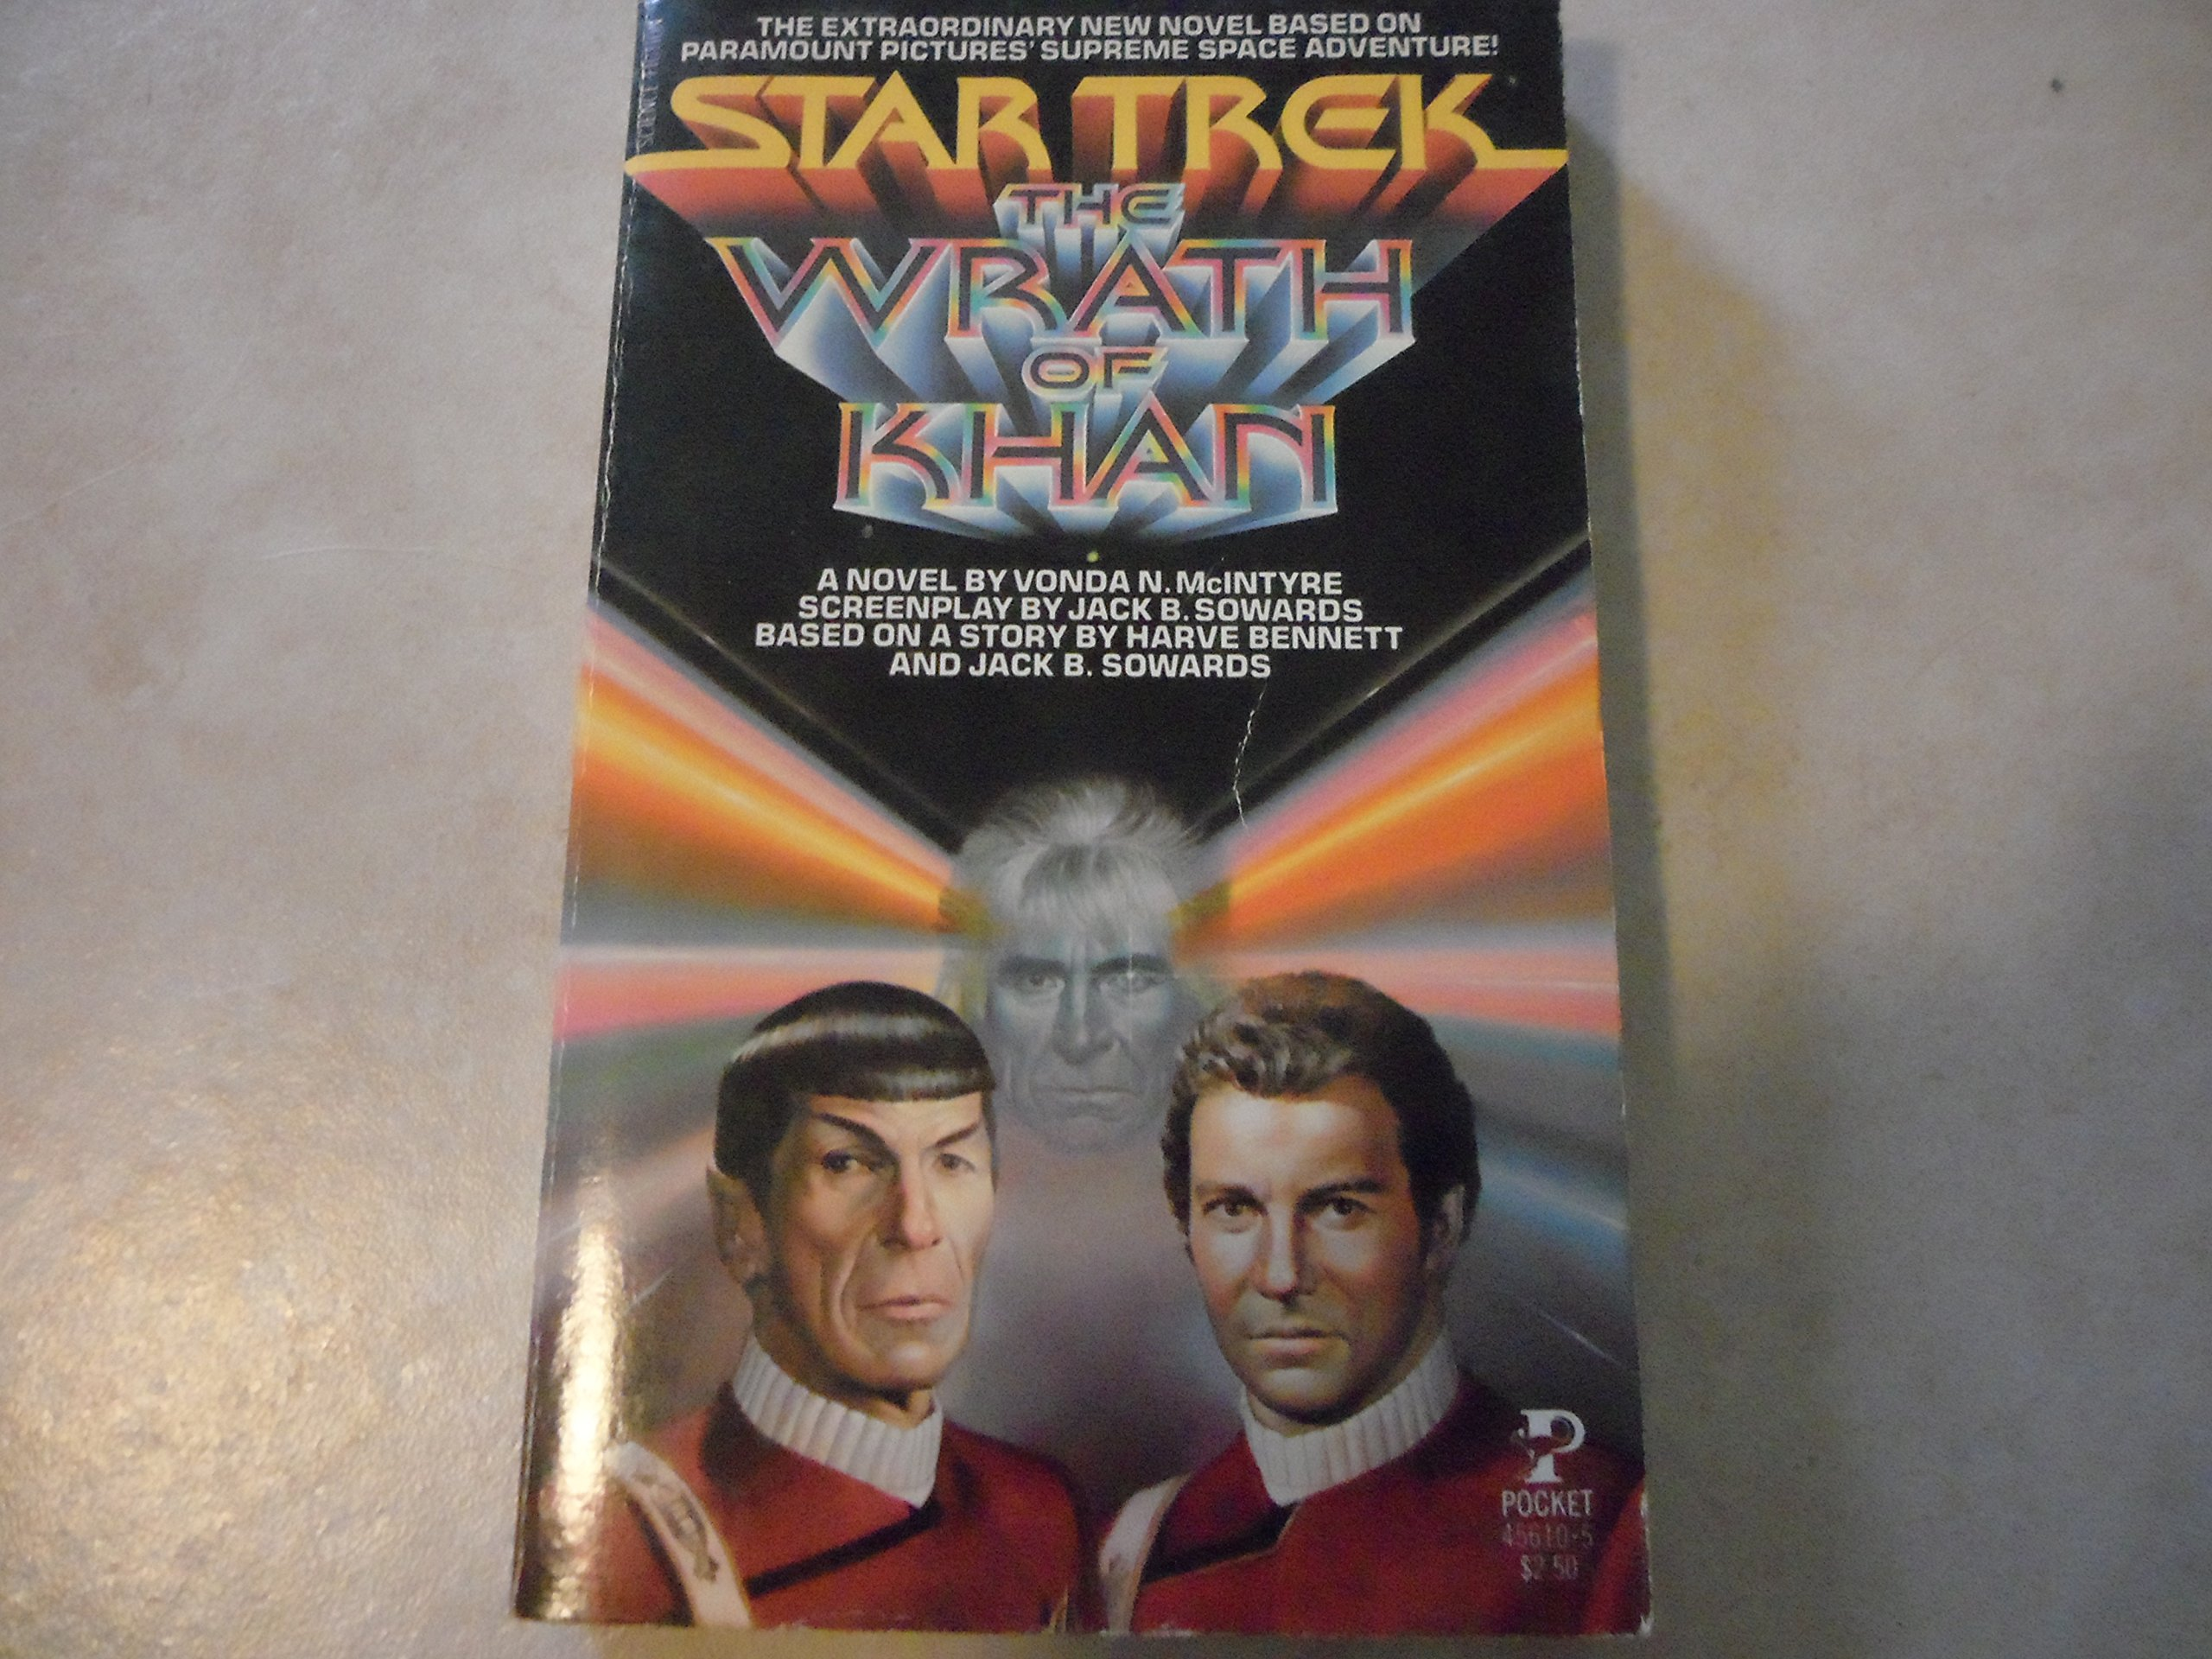 The Wrath of Khan (Star Trek), Vonda N. McIntyre (Adapter); Jack B. Sowards; Harve Bennett